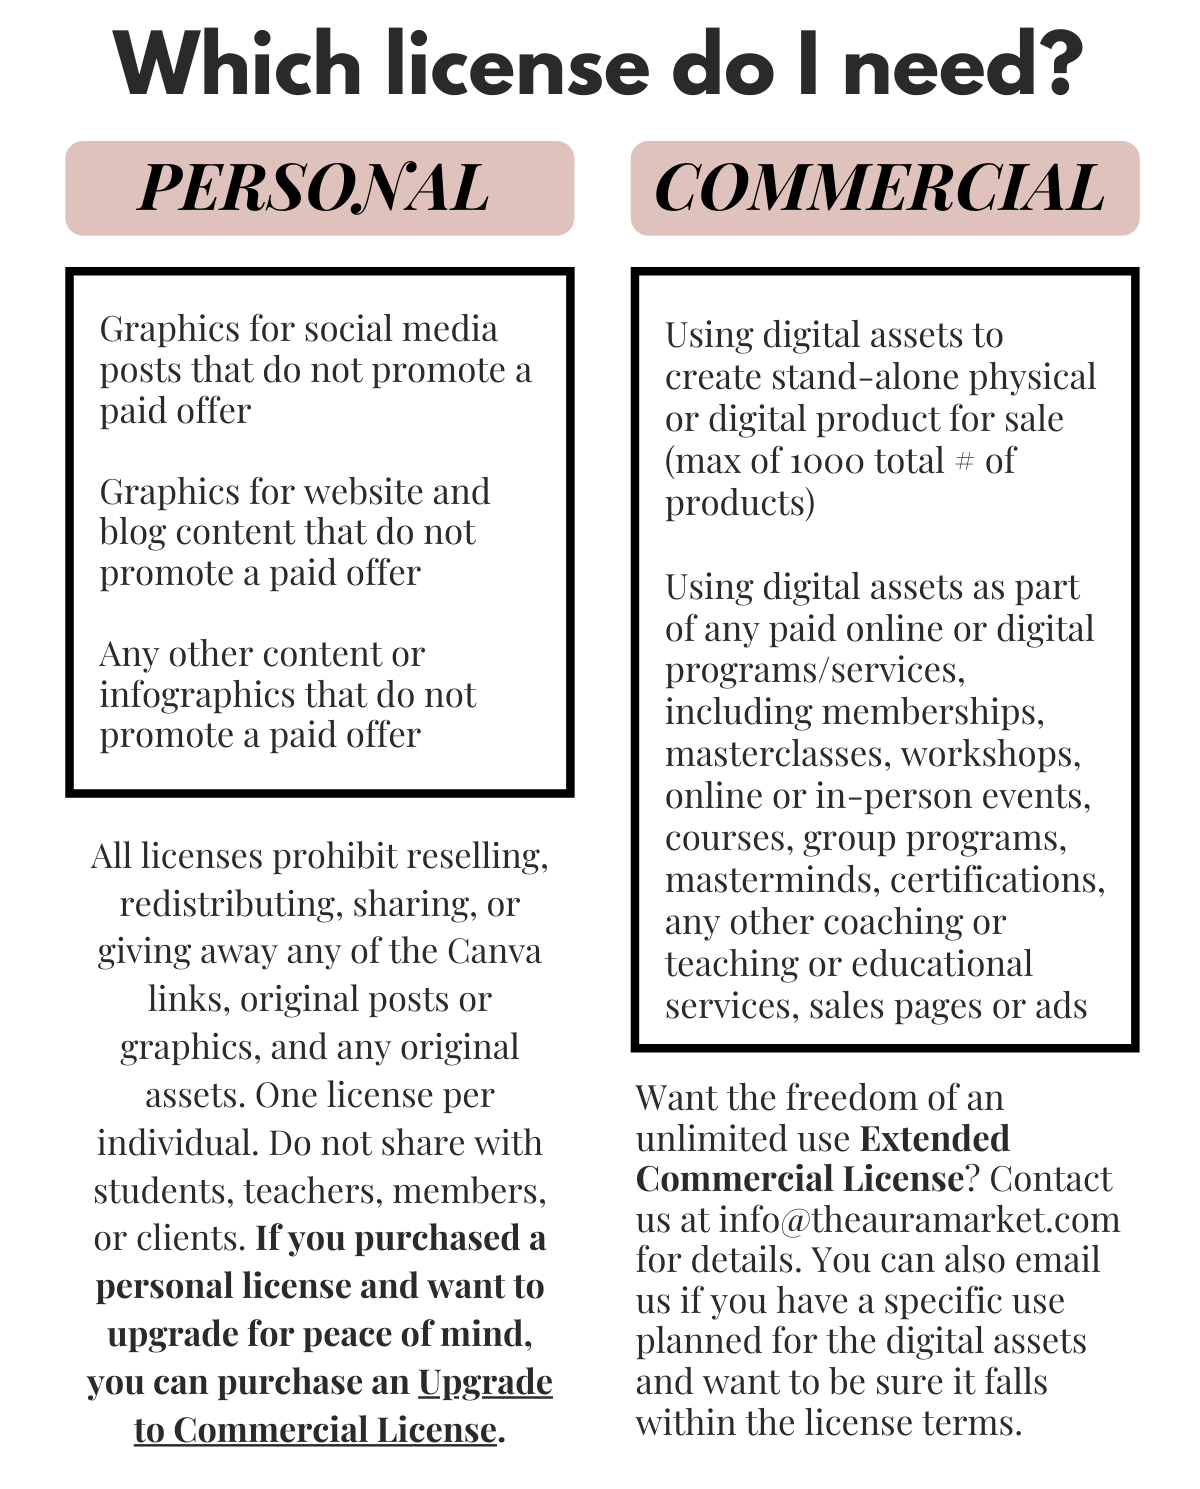 the-aura-market-digital-product-terms-and-conditions